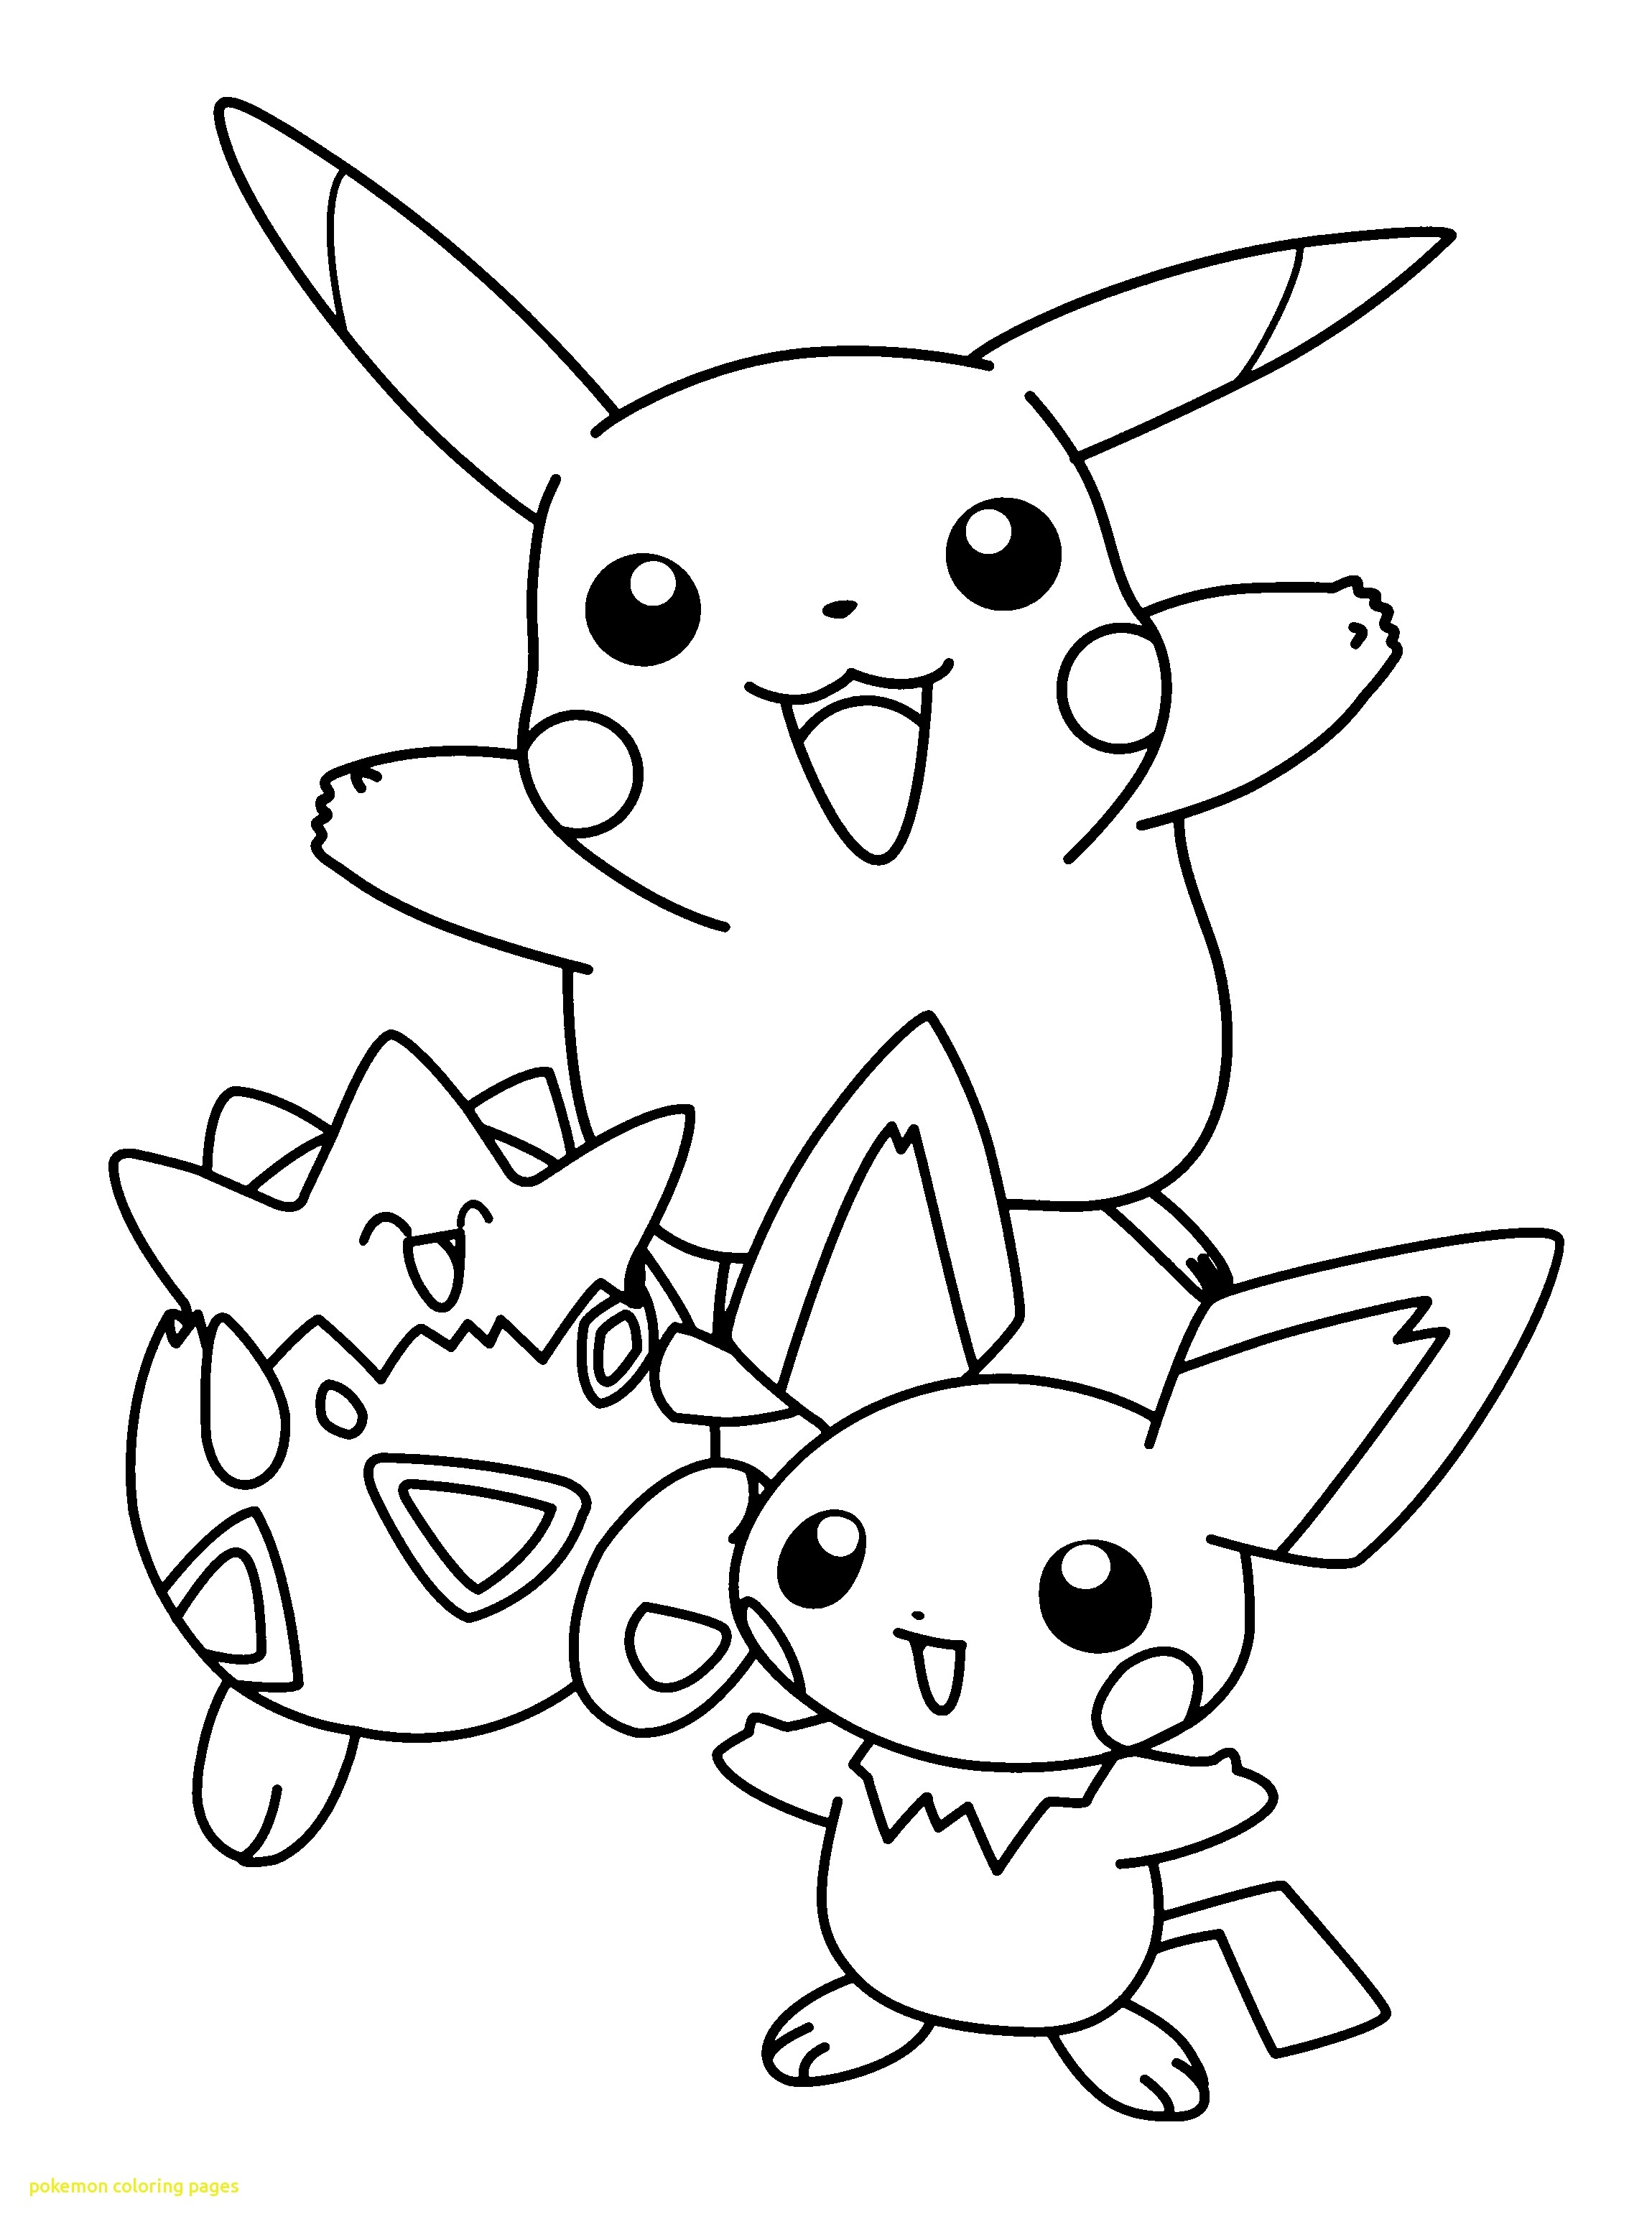 2300x3100 Cool Charmander Pokemon Coloring Pages For Kids Pokemon Characters